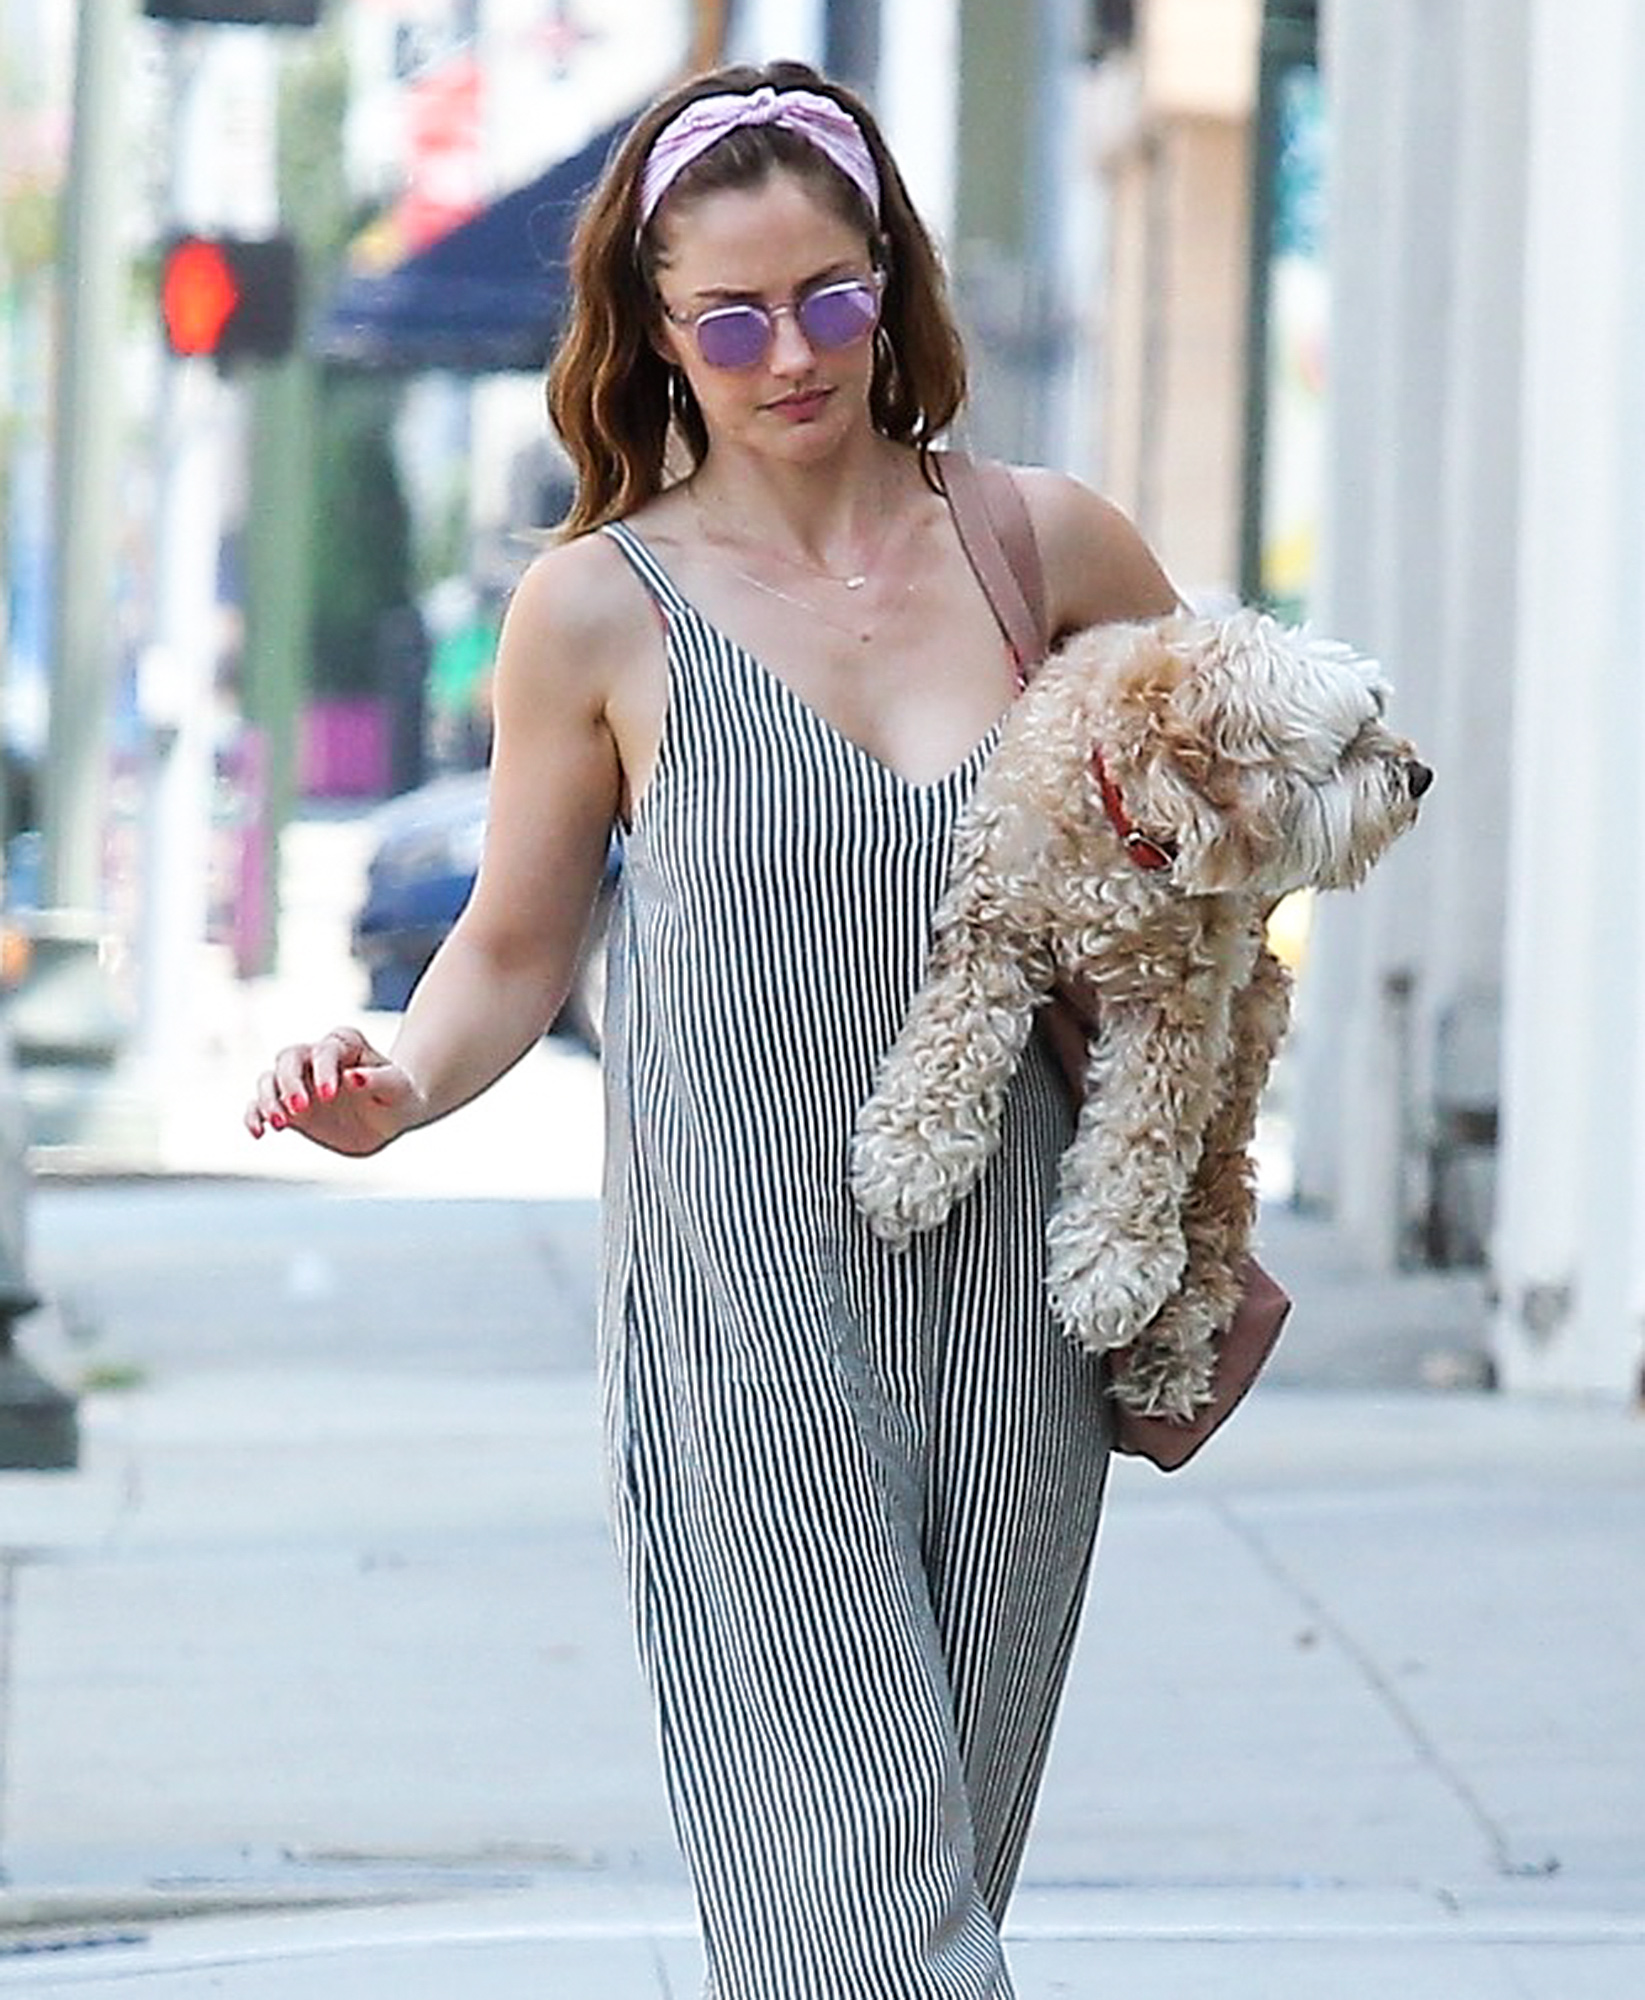 EXCLUSIVE: Minka Kelly spotted running errands with her pup in La Quinta